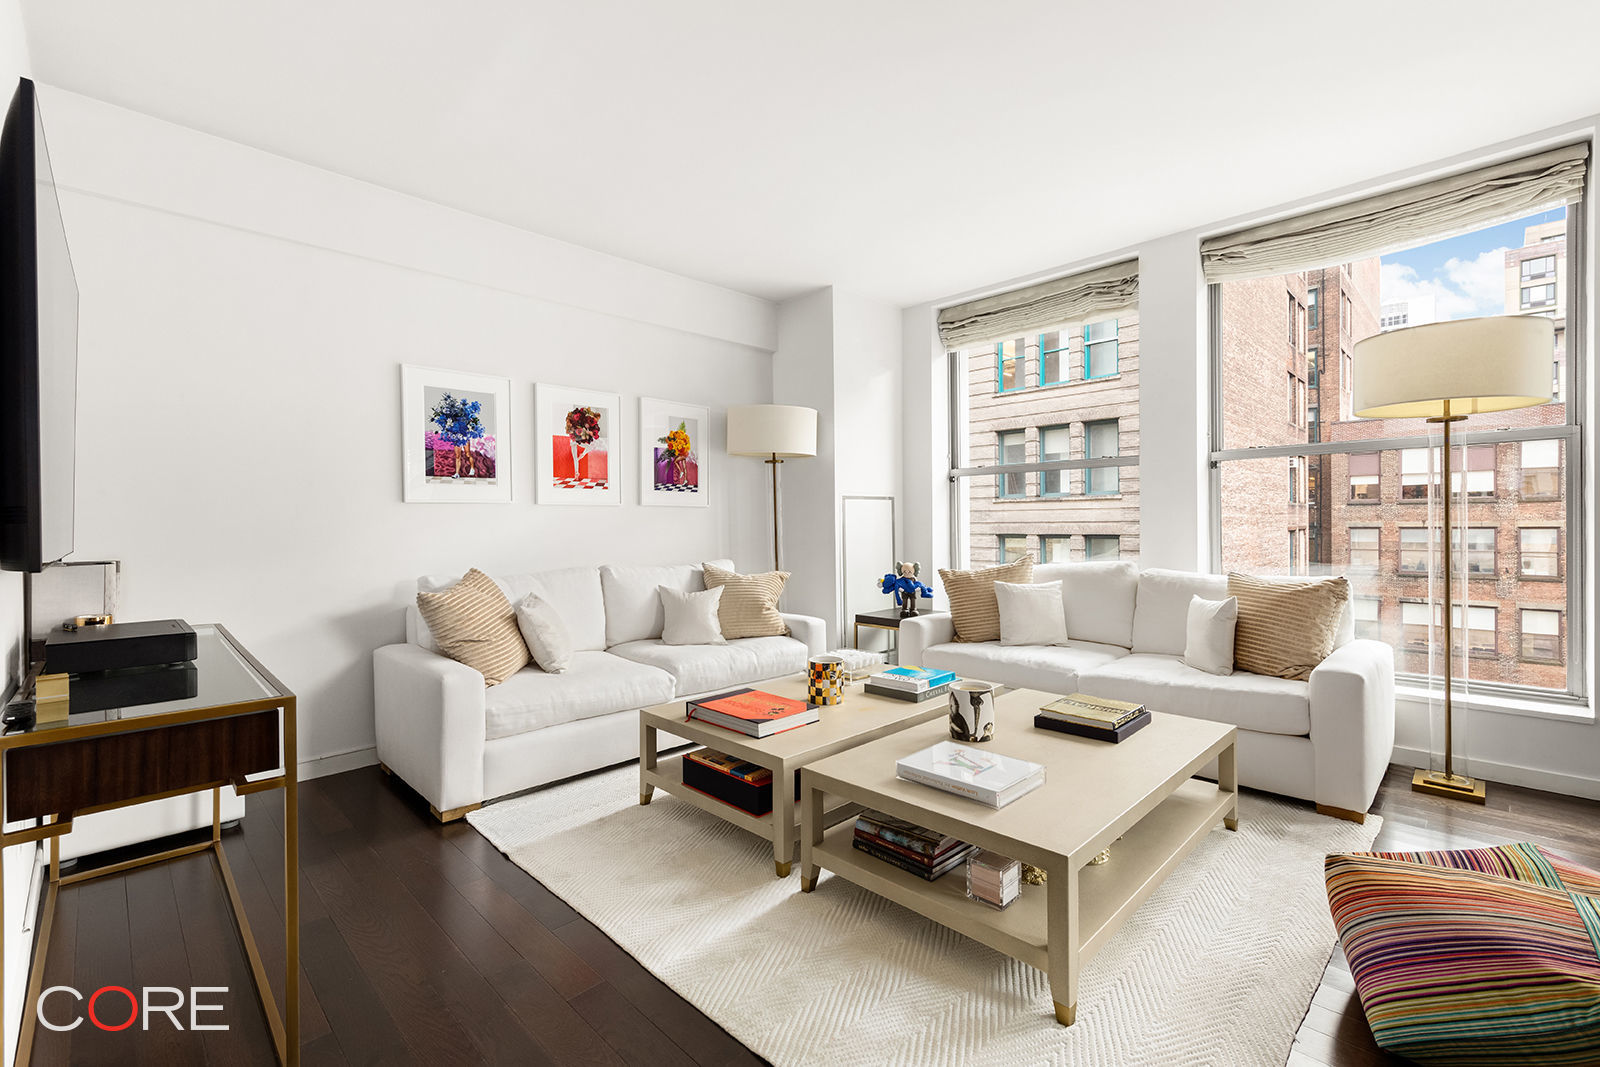 Apartment for sale at 27 West 19th Street, Apt 9th Floor